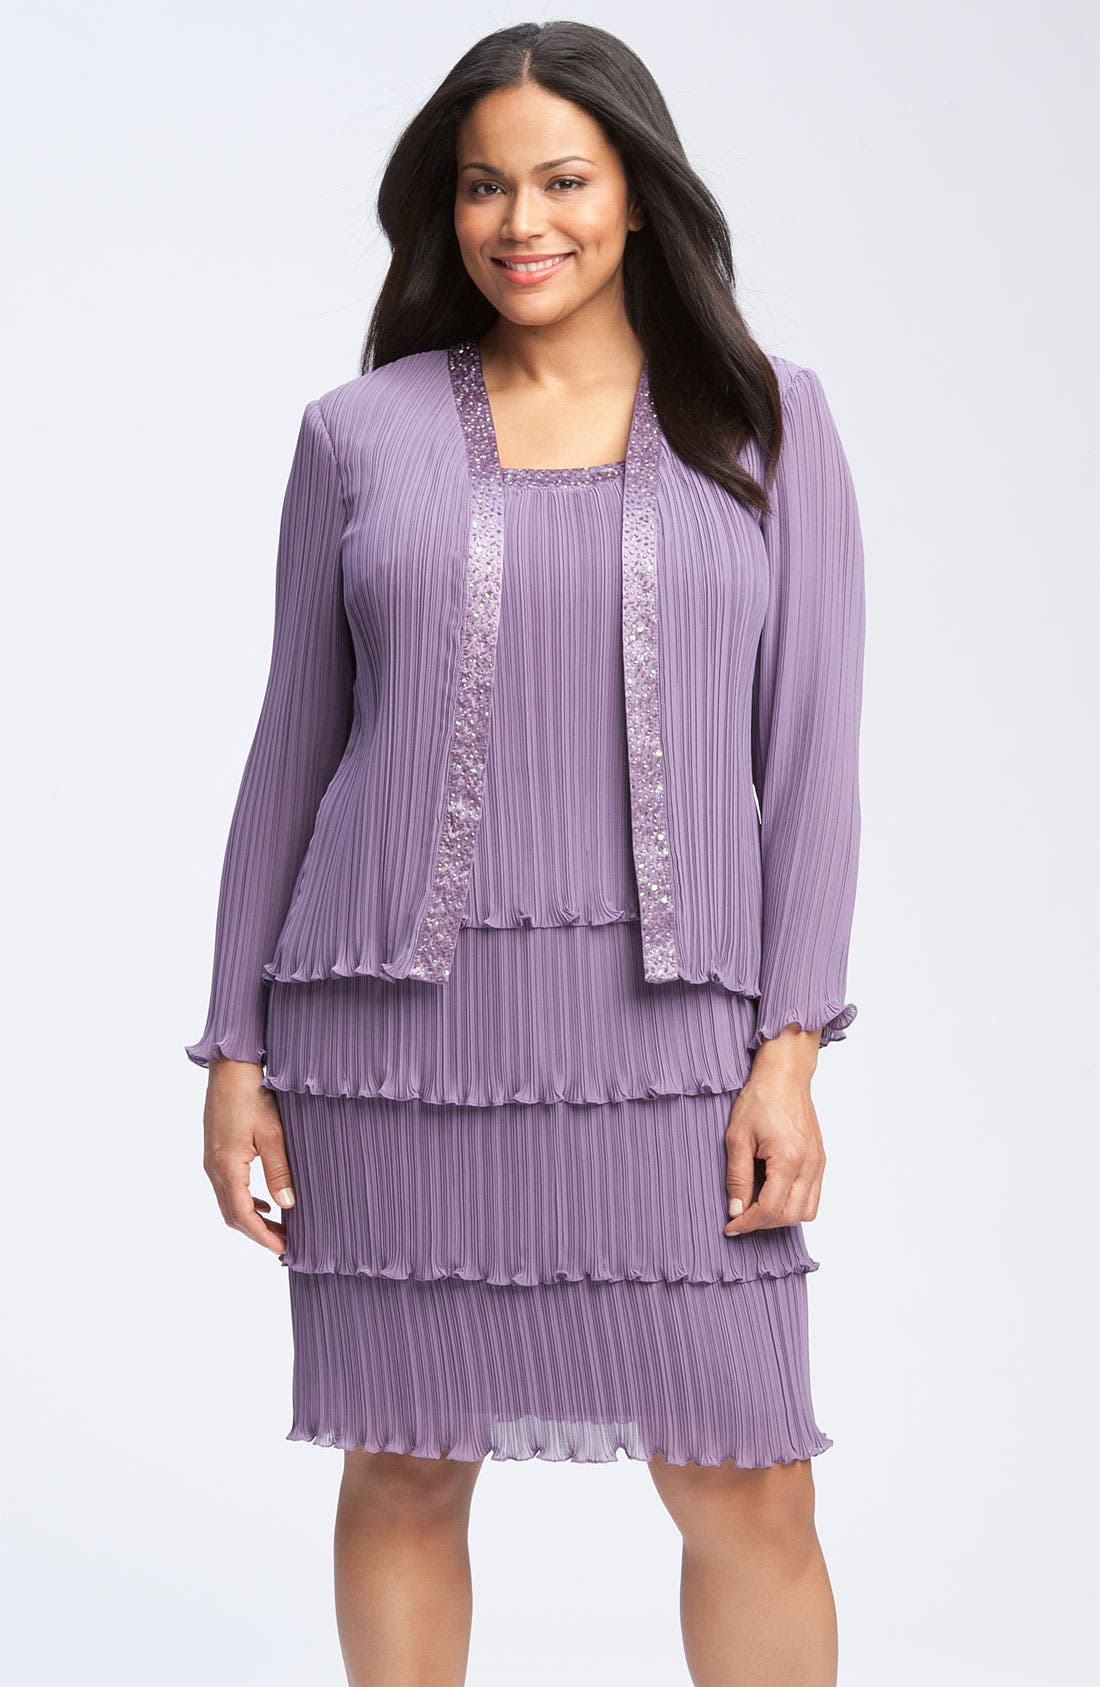 Alternate Image 1 Selected - Patra One Piece Chiffon Jacket Dress (Plus)